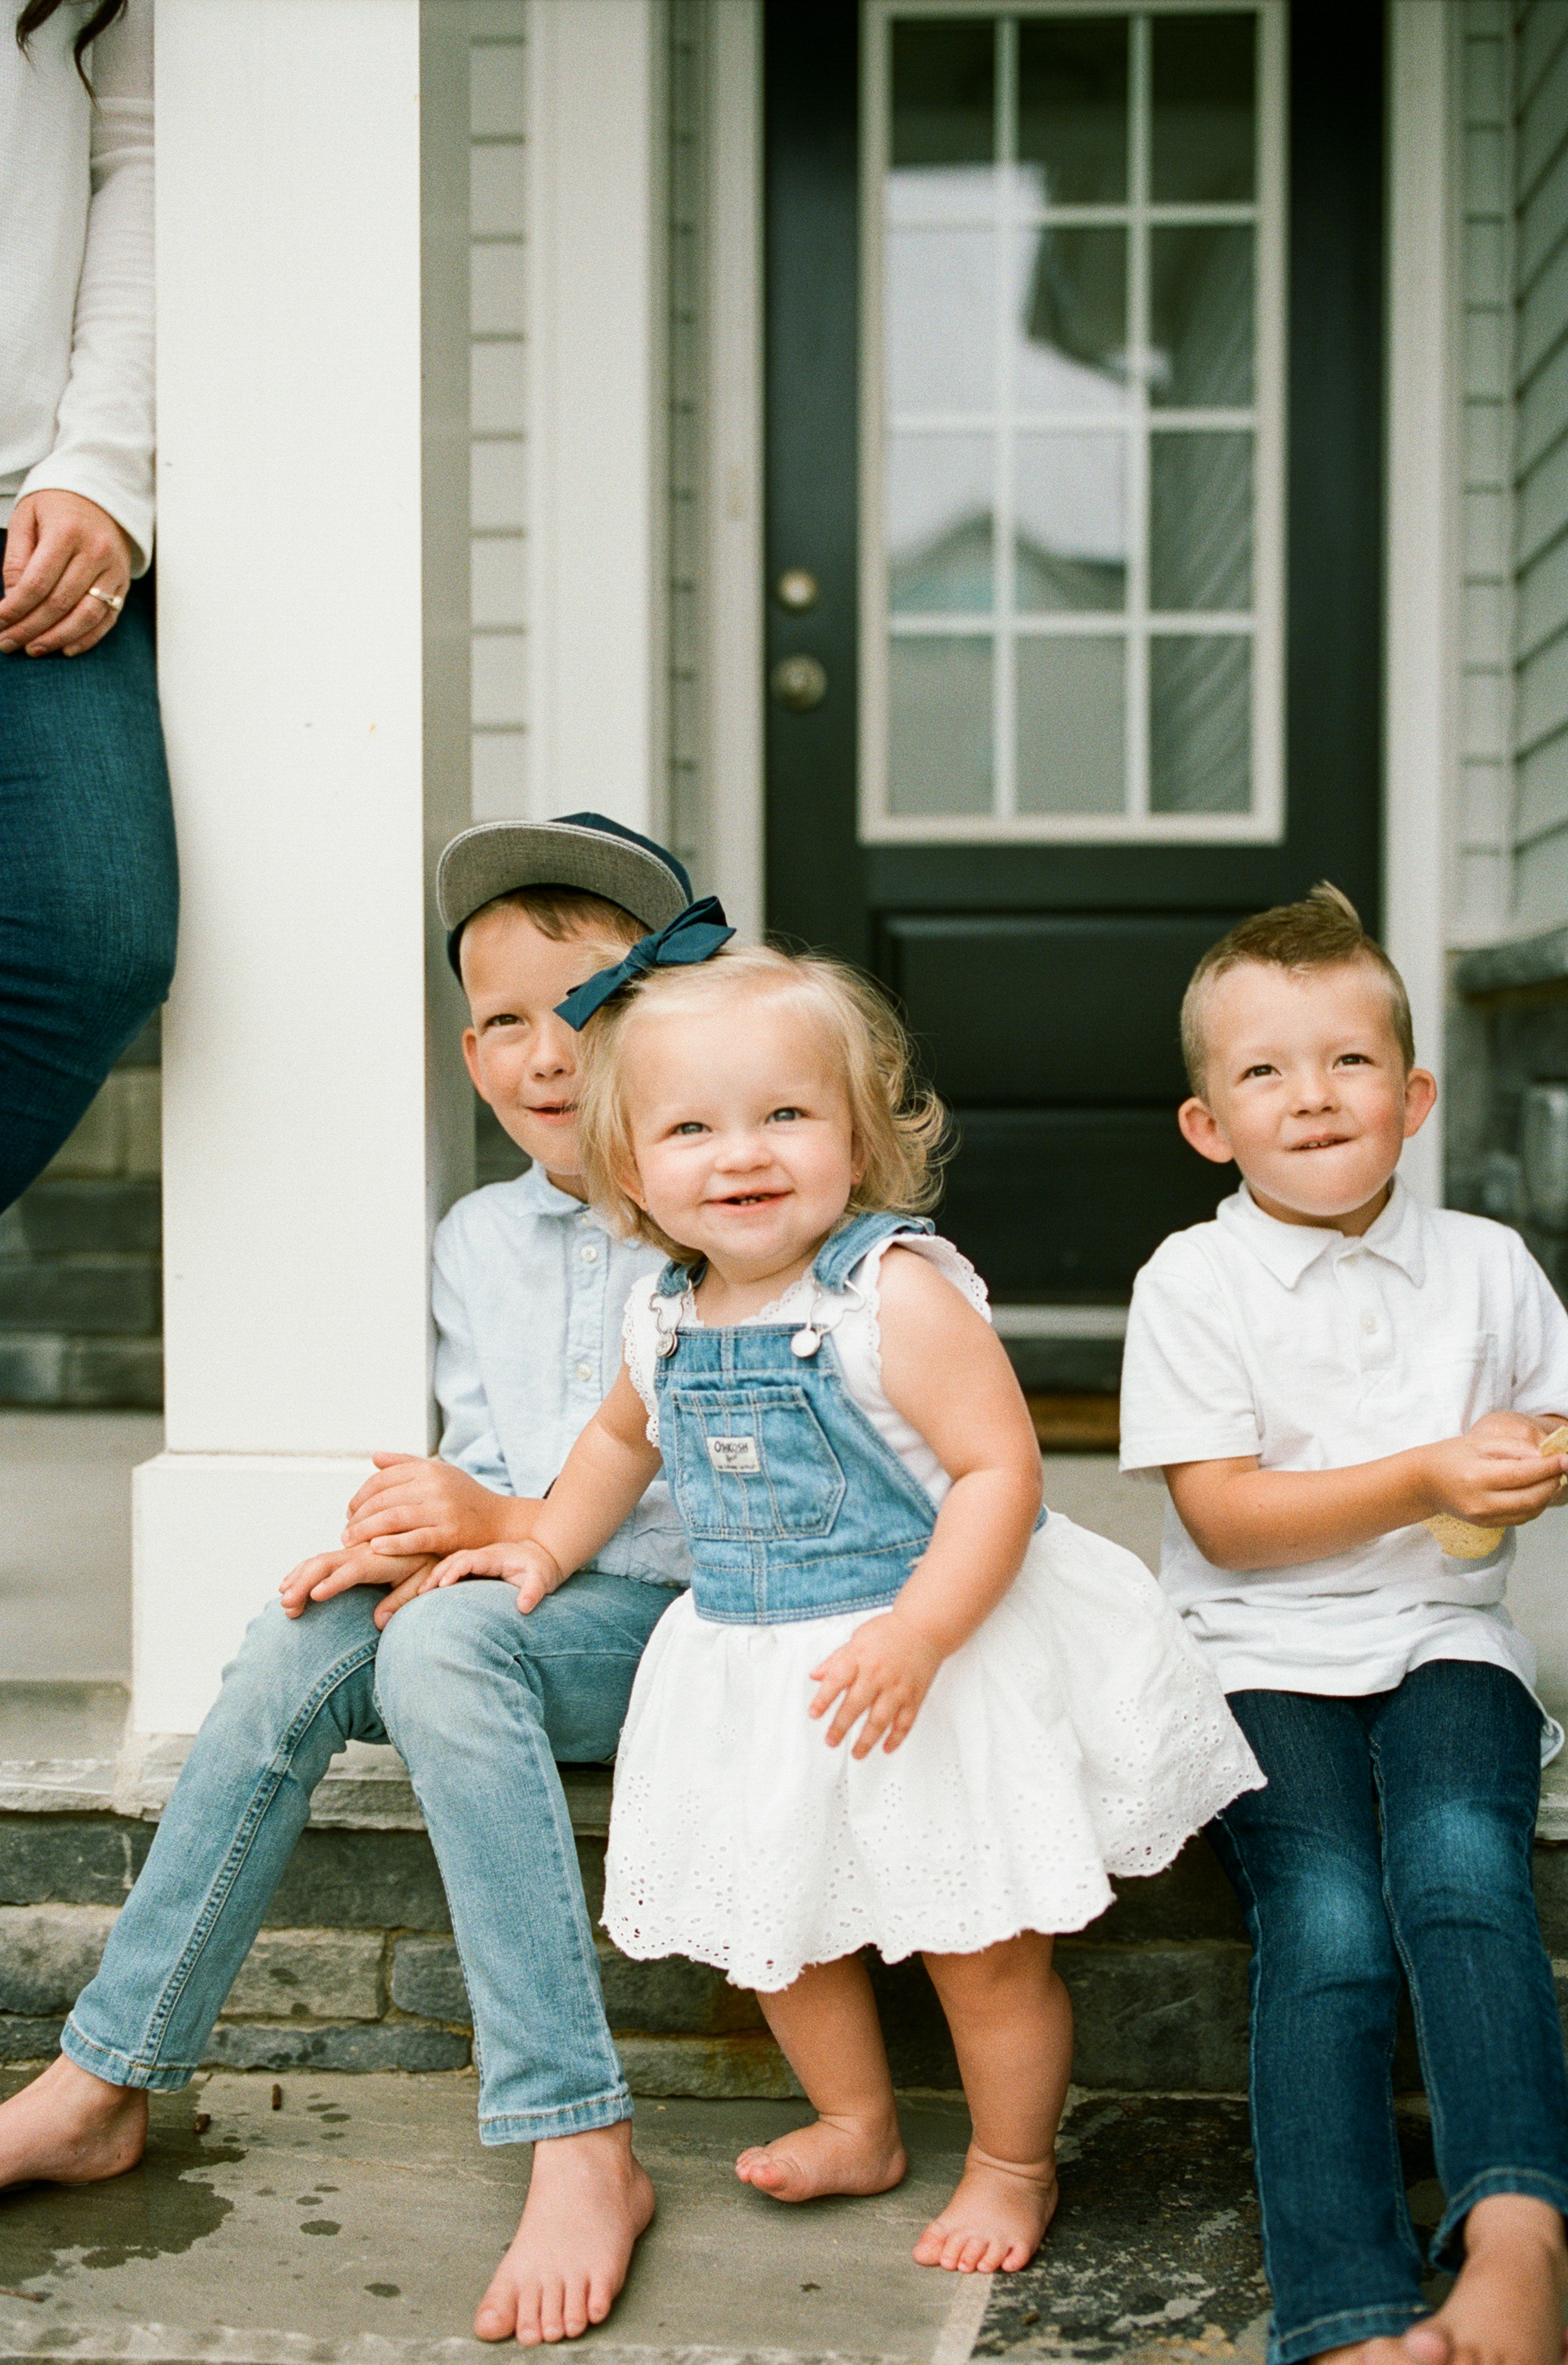 raleigh-family-photographer-lifestyle-home-phtoography-session-004